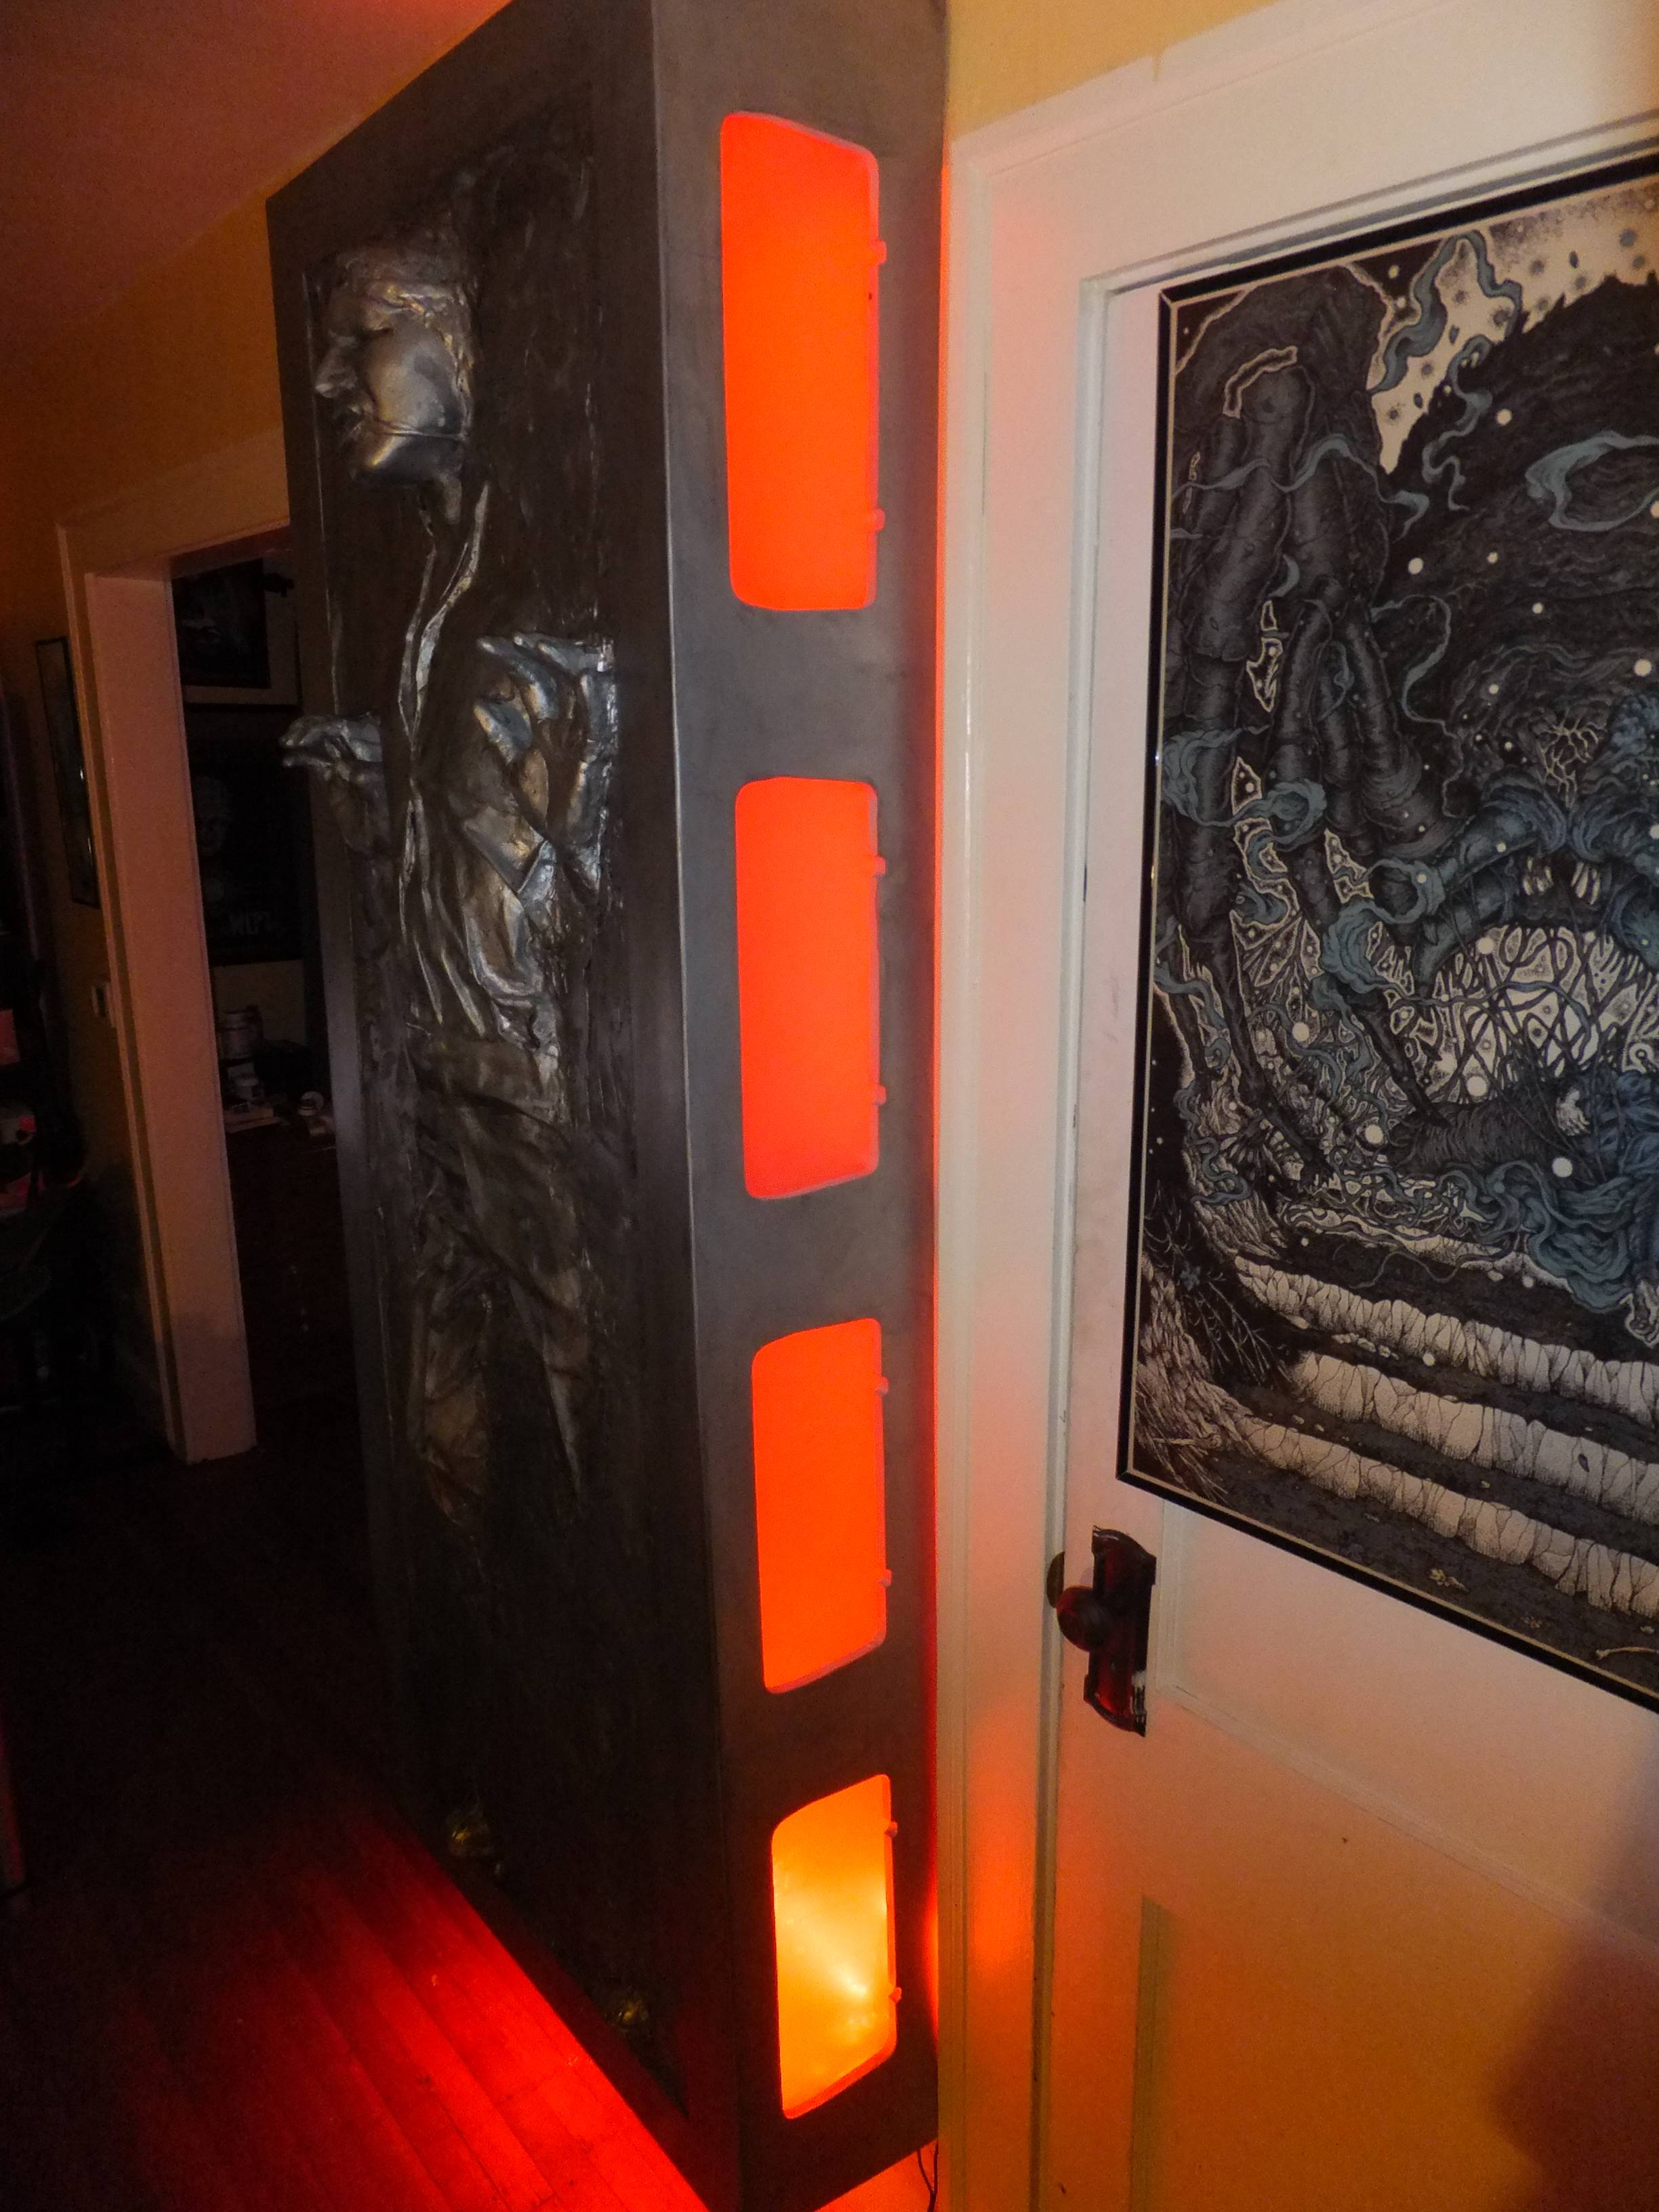 Assembling a Full Sized Han Solo in Carbonite | Make: